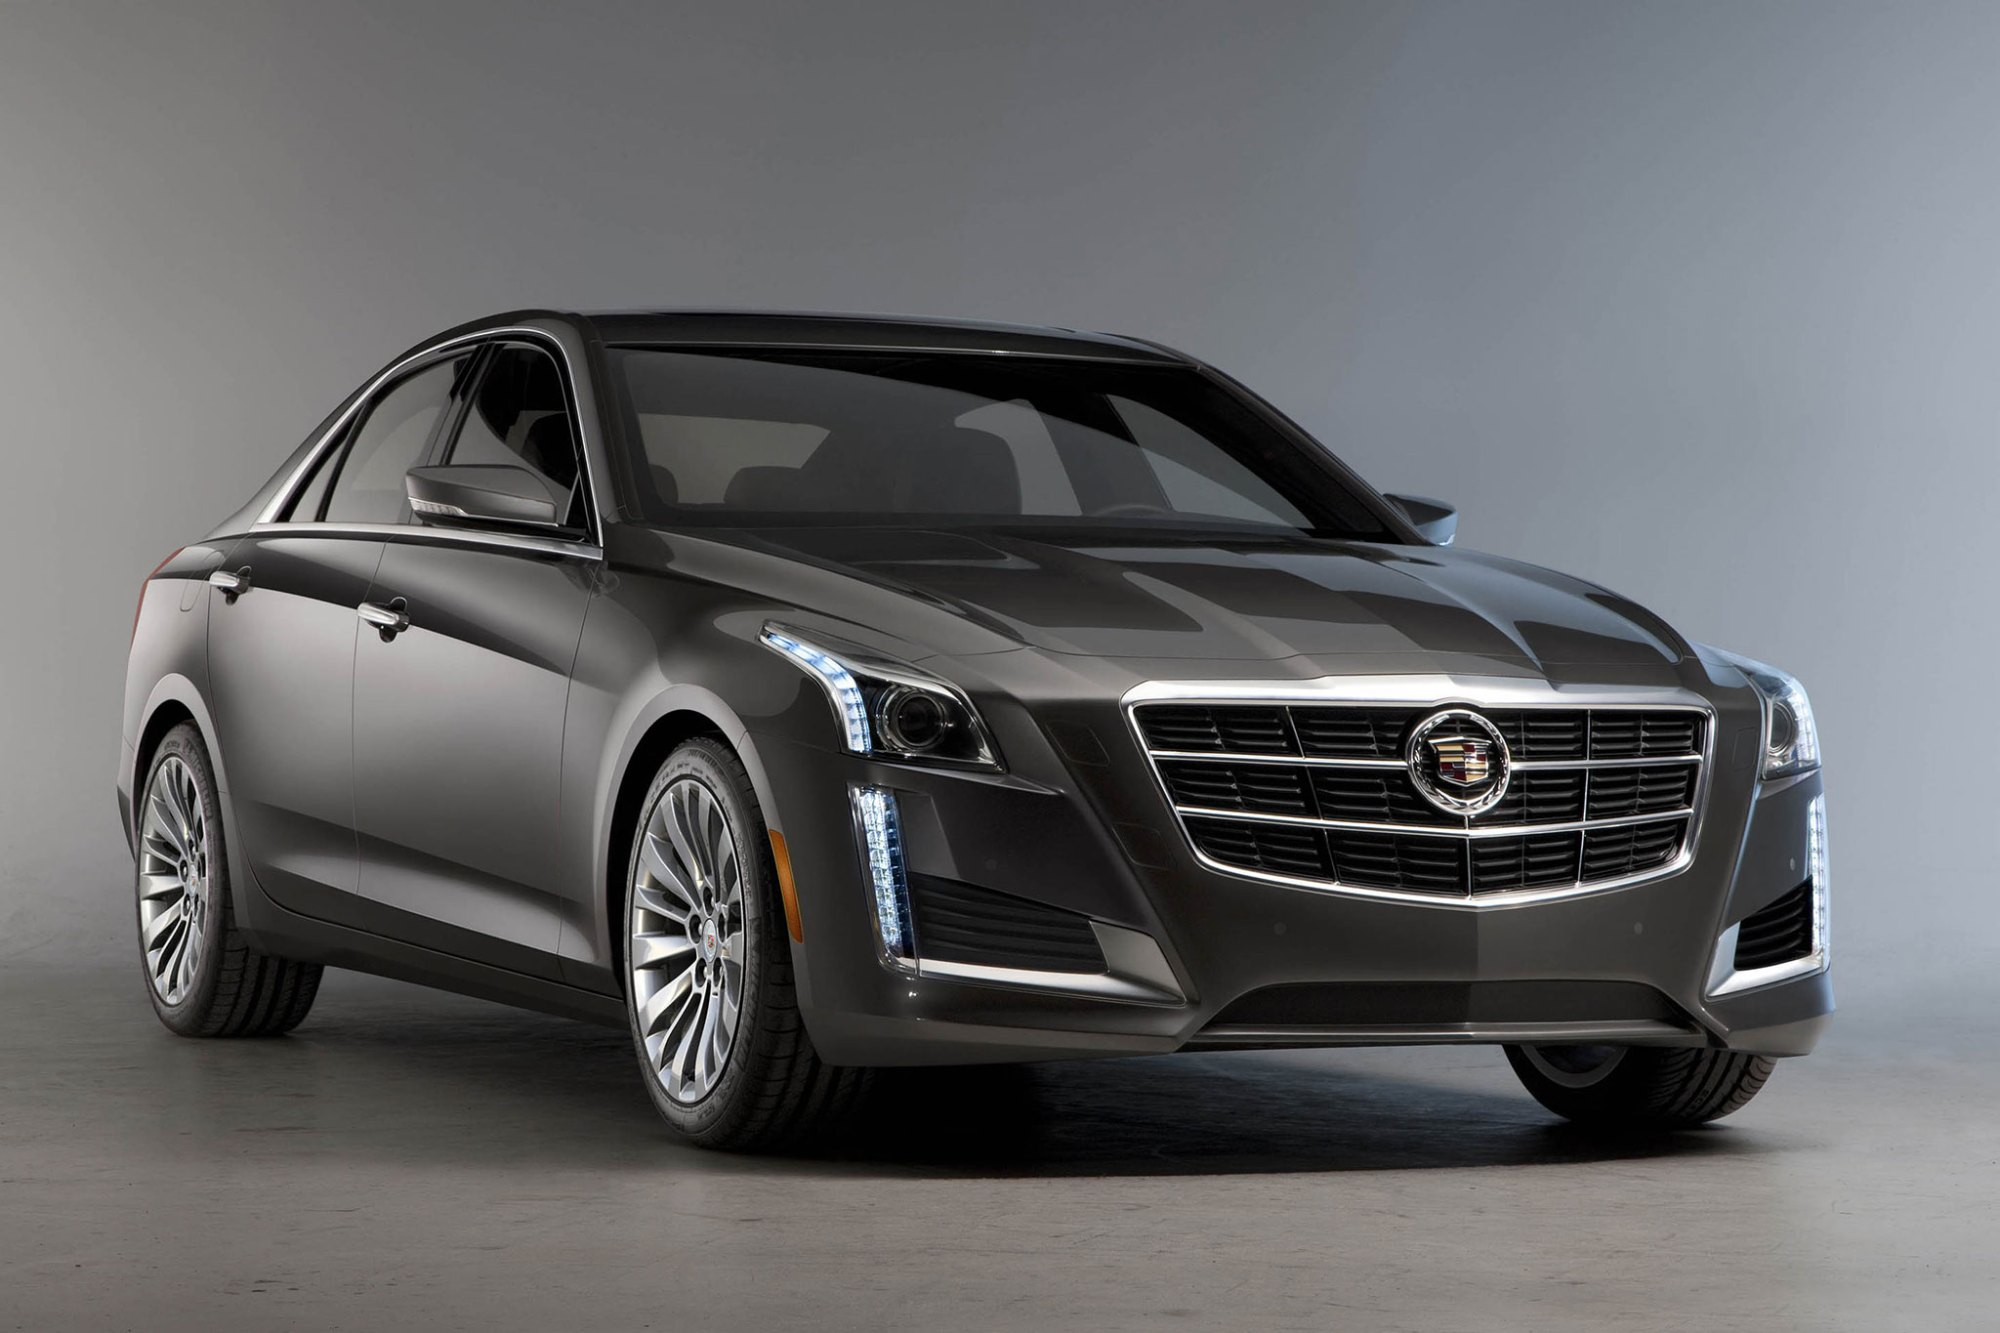 hight resolution of 2014 cadillac cts 13 222